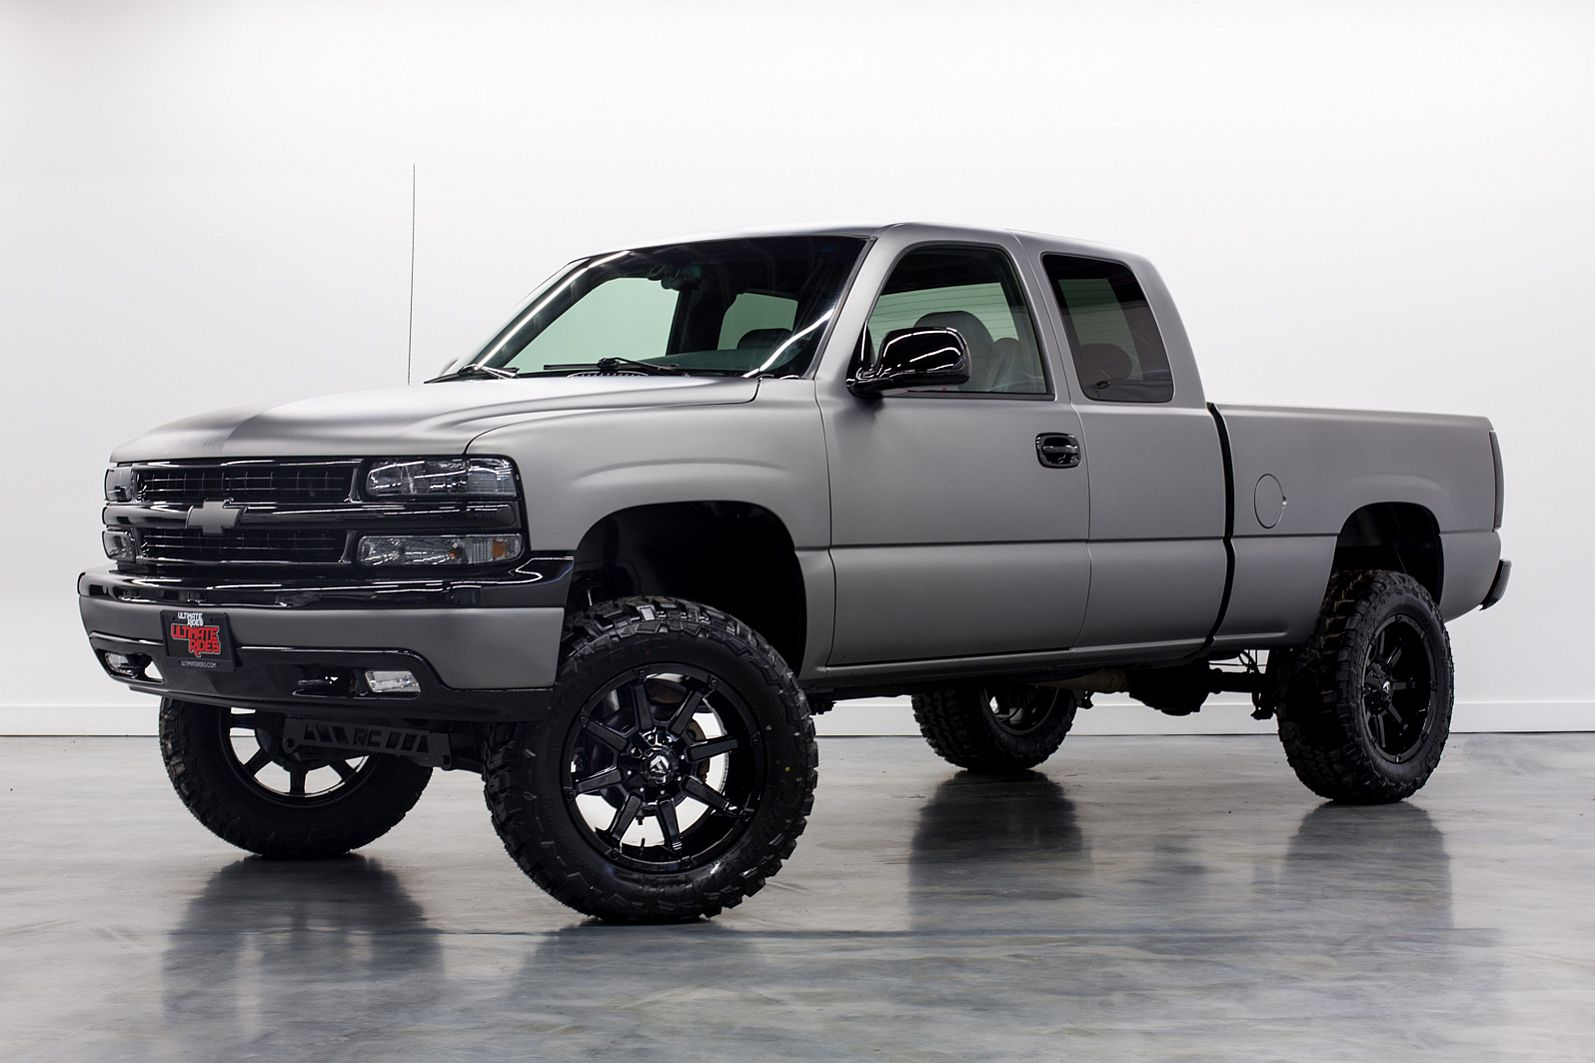 2000 Chevrolet Silverado 1500 Ls Z71 Off Road Lifted 4x4 The 1999